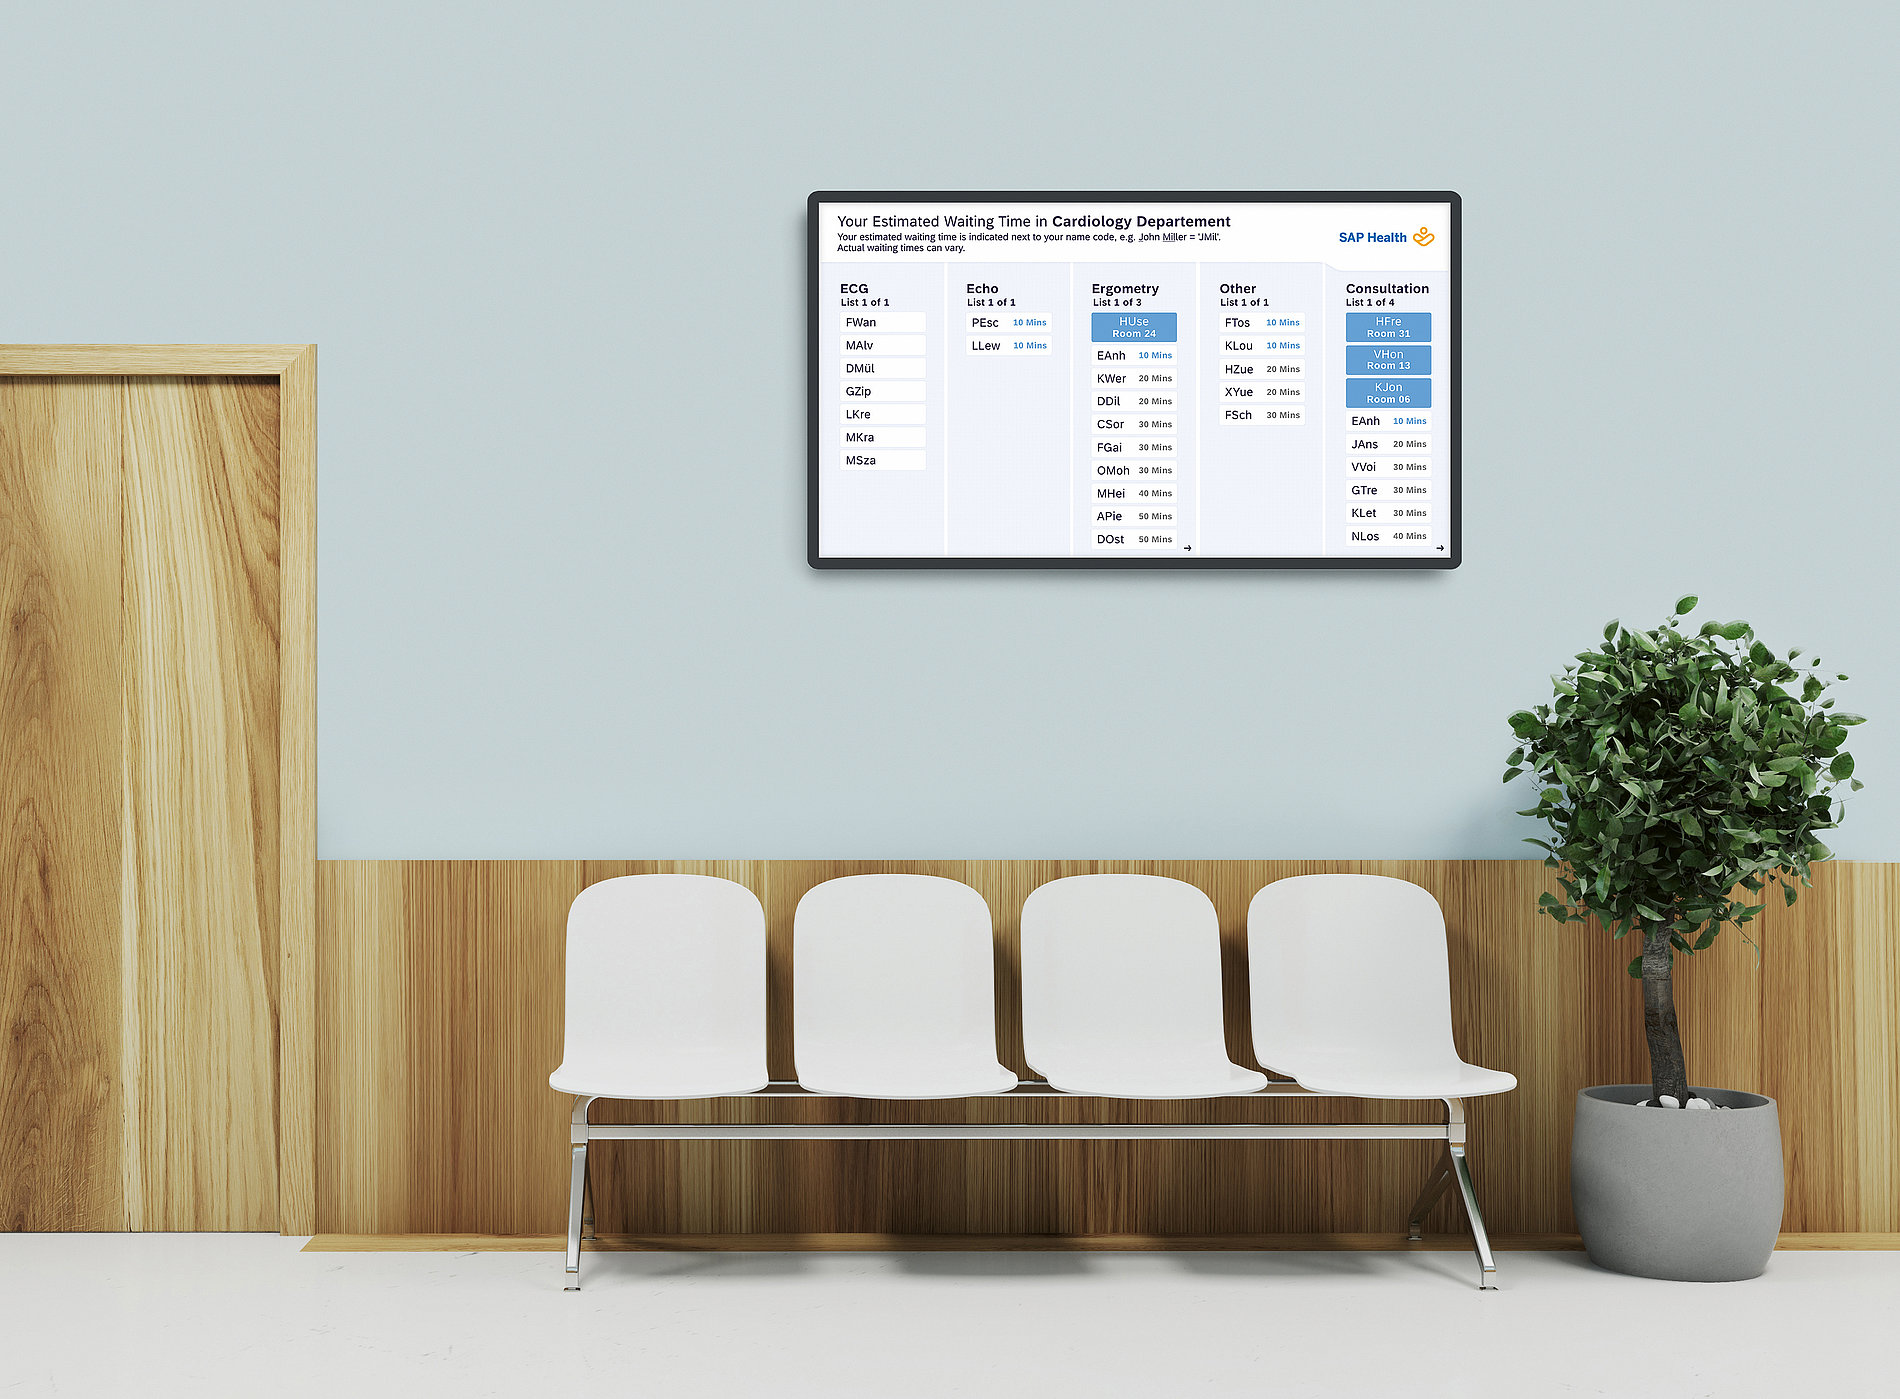 SAP Health for Waiting Time Management | Red Dot Design Award